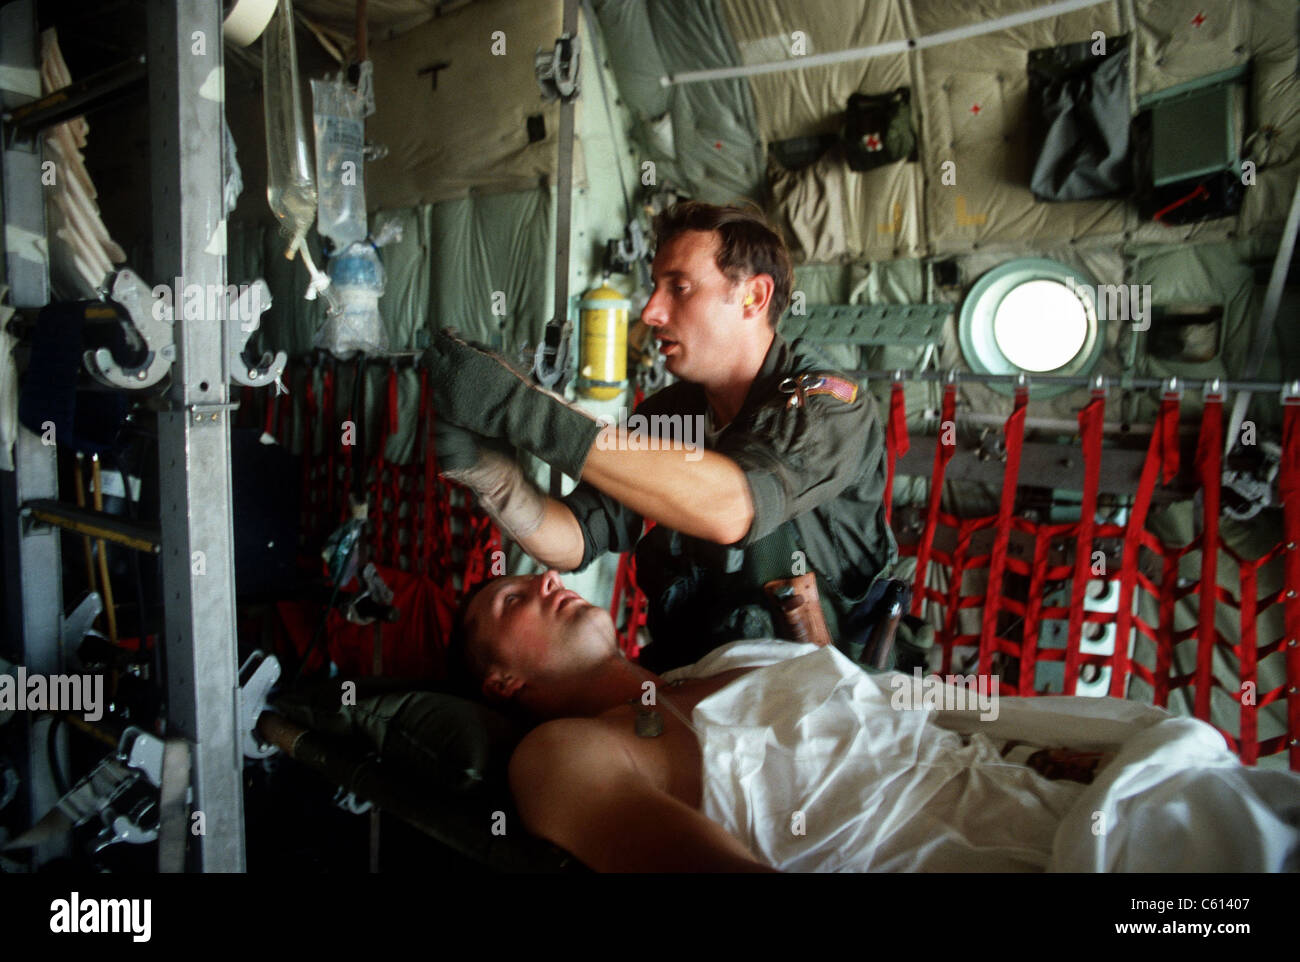 A medic adjusts the intravenous drip bag of a wounded US serviceman en route to a medical facility after the invasion - Stock Image